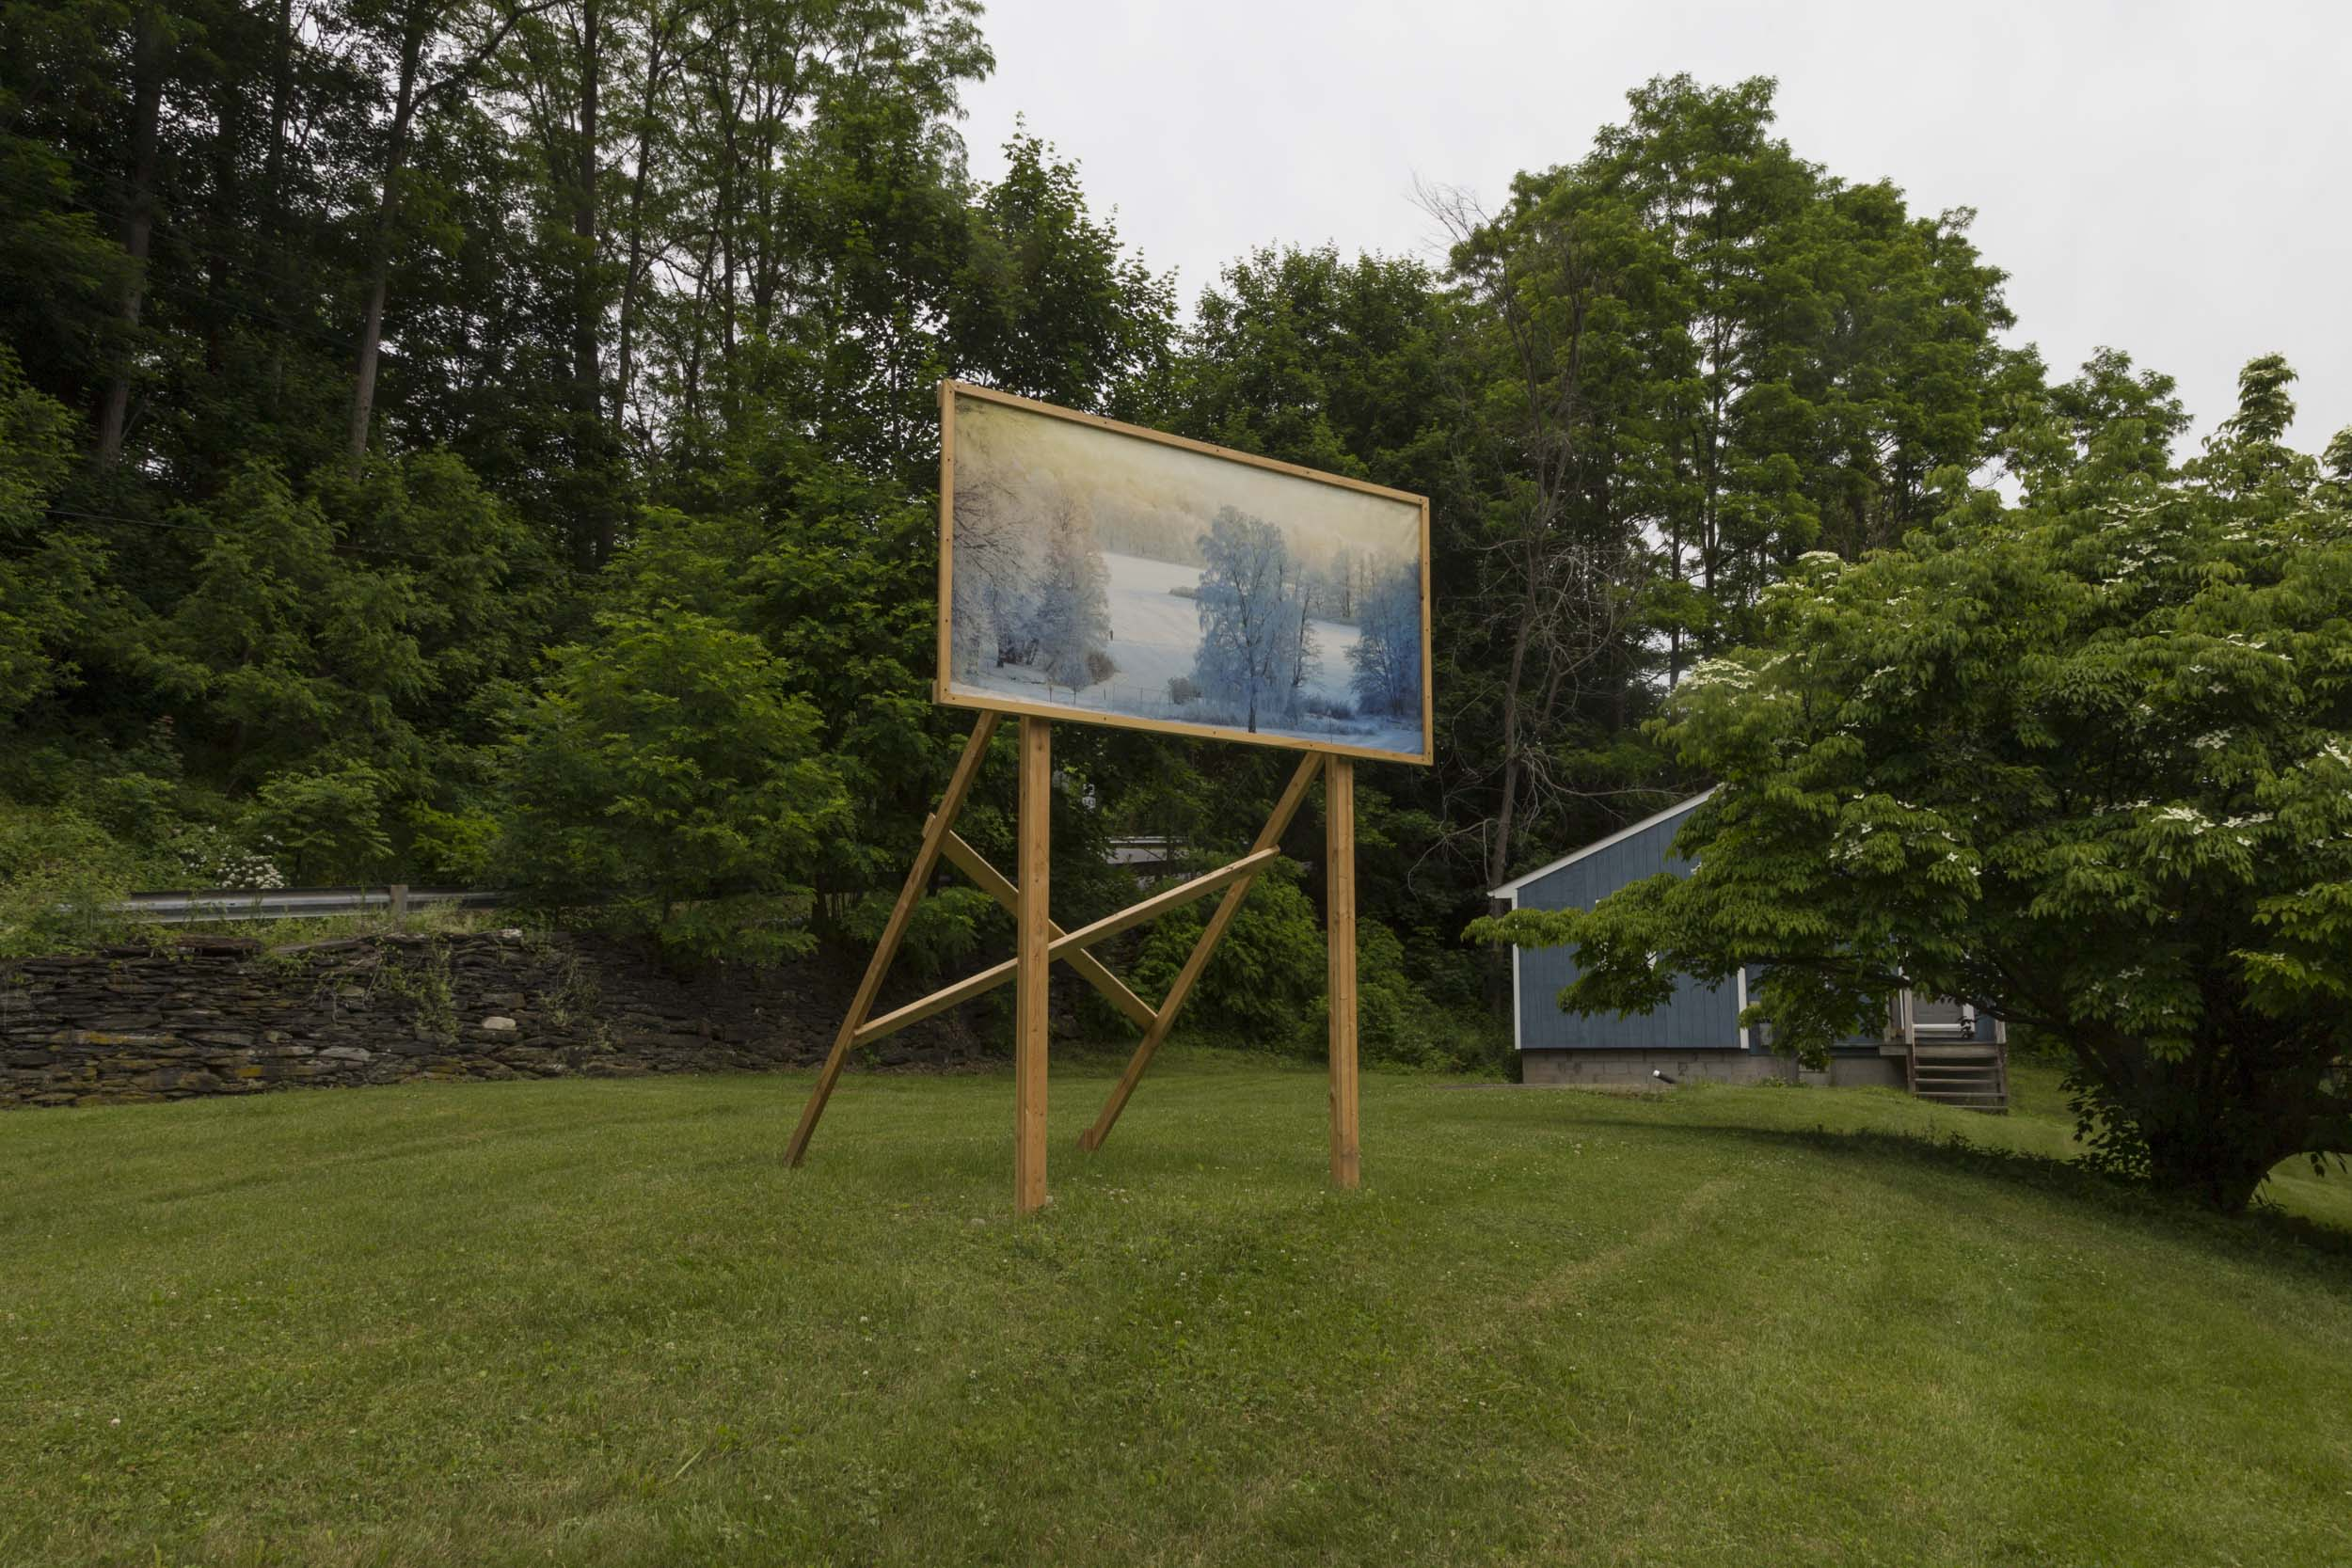 wassaic-project-exhibition-change-of-state-2018-06-10-12-22-59.jpg